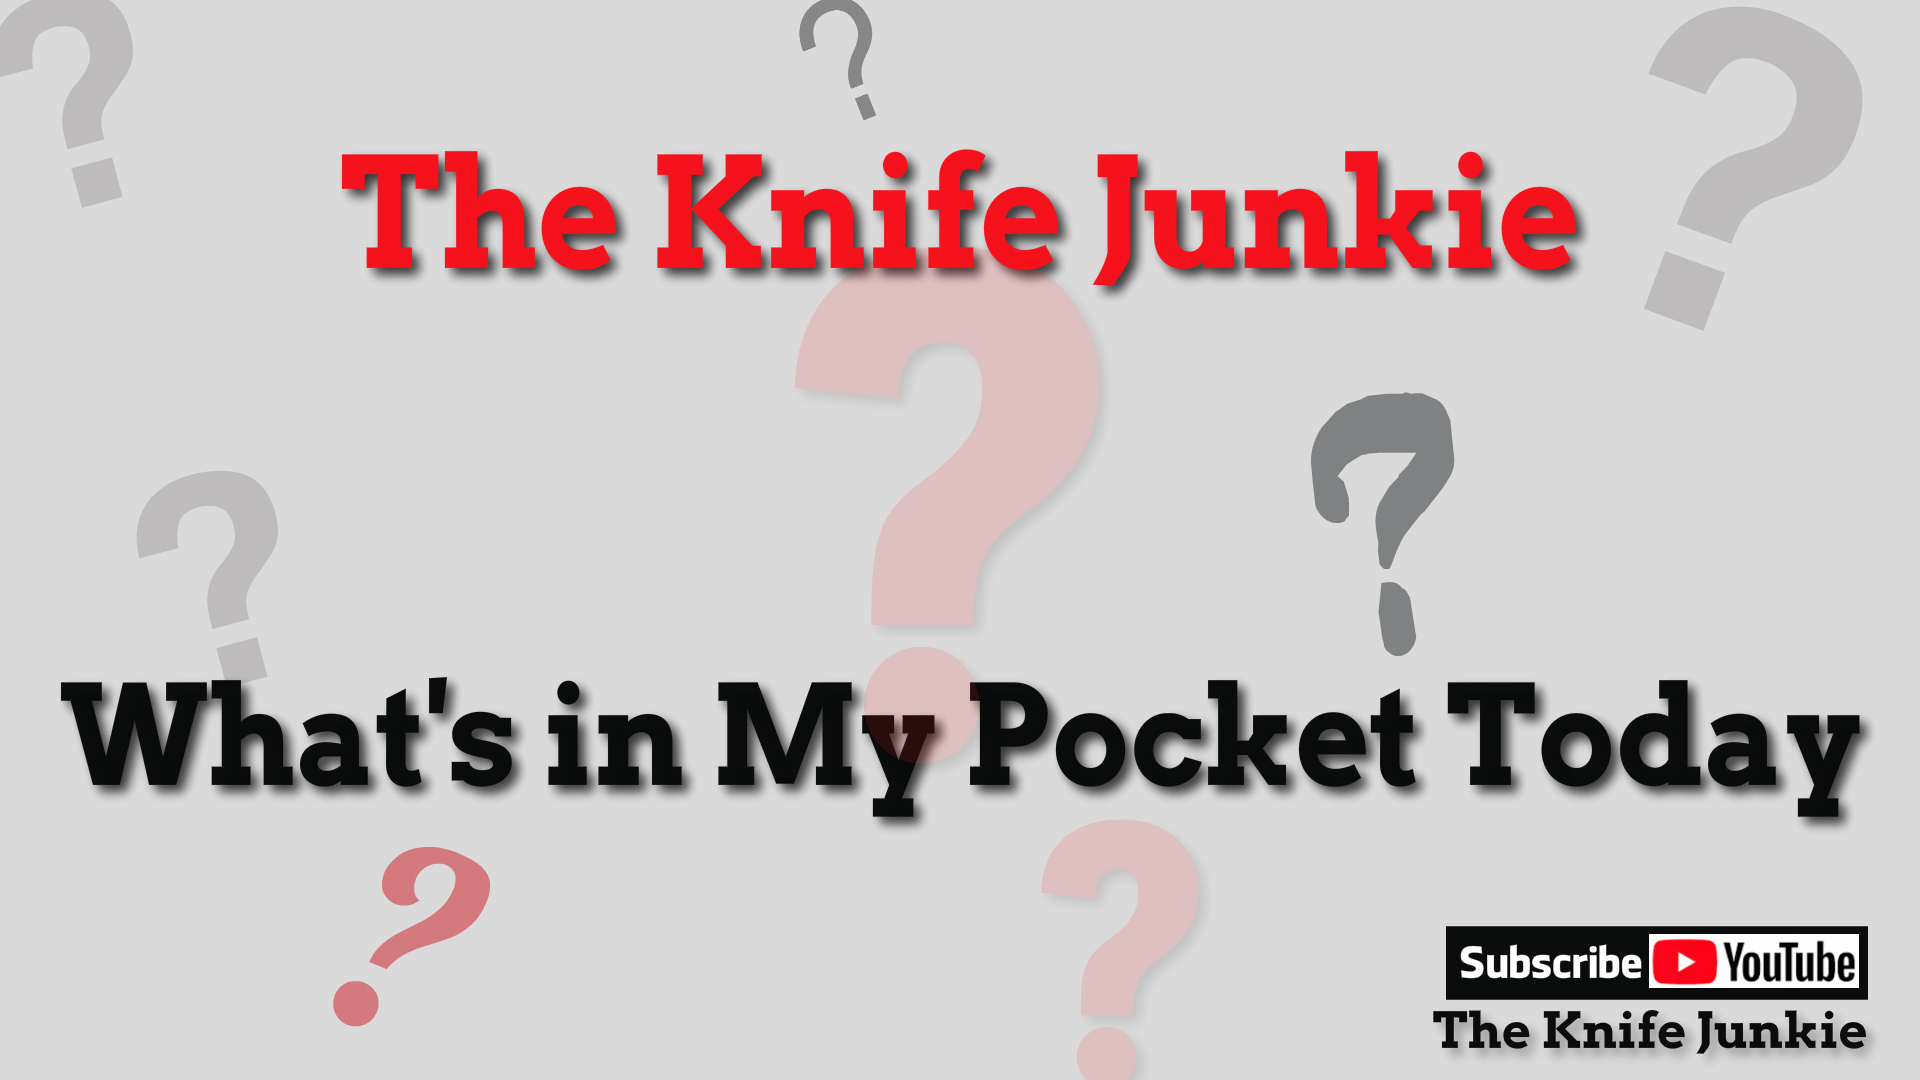 Whats In The Knife Junkie's Pocket Today Monday Oct. 22, 2018